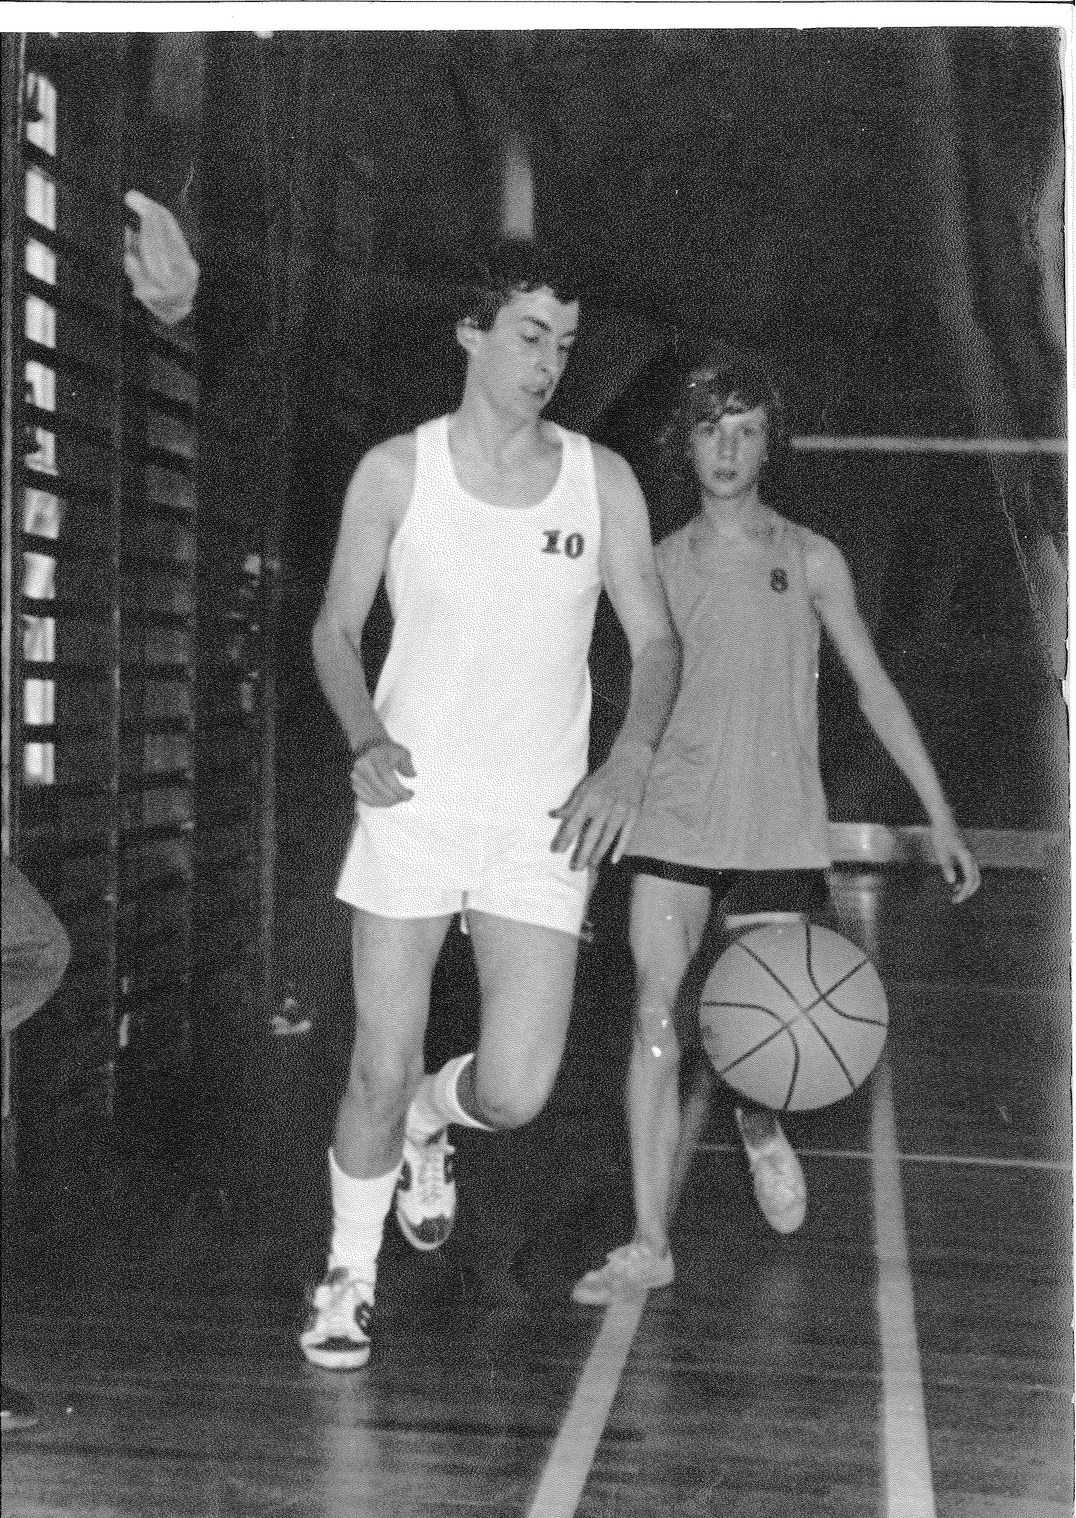 Keith Cudlip chases Ron Hand in the 1978 Basketball Marathon Charity Match